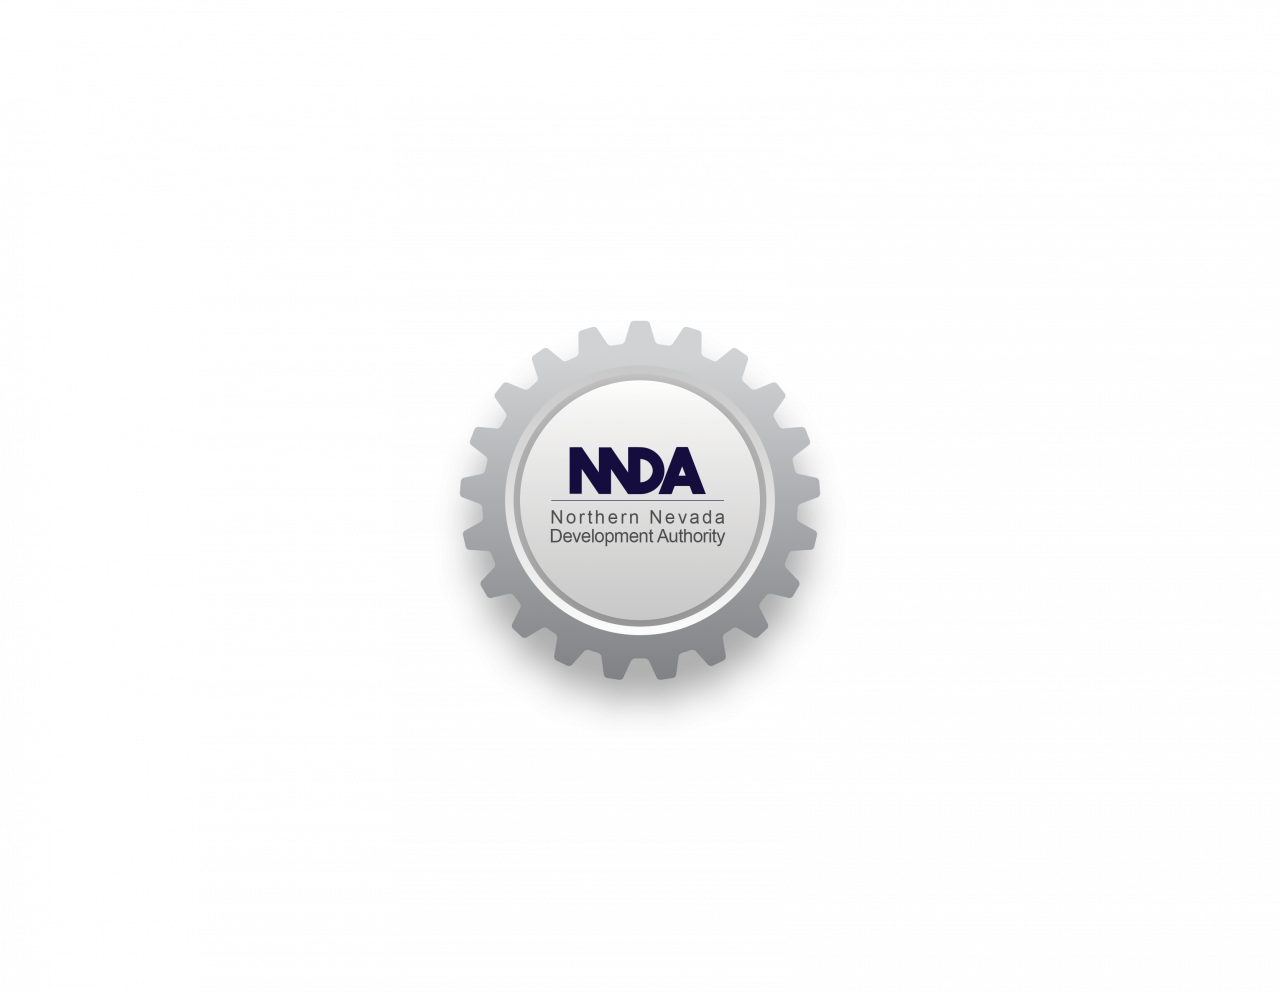 NNDA Wheel Logo with color.png